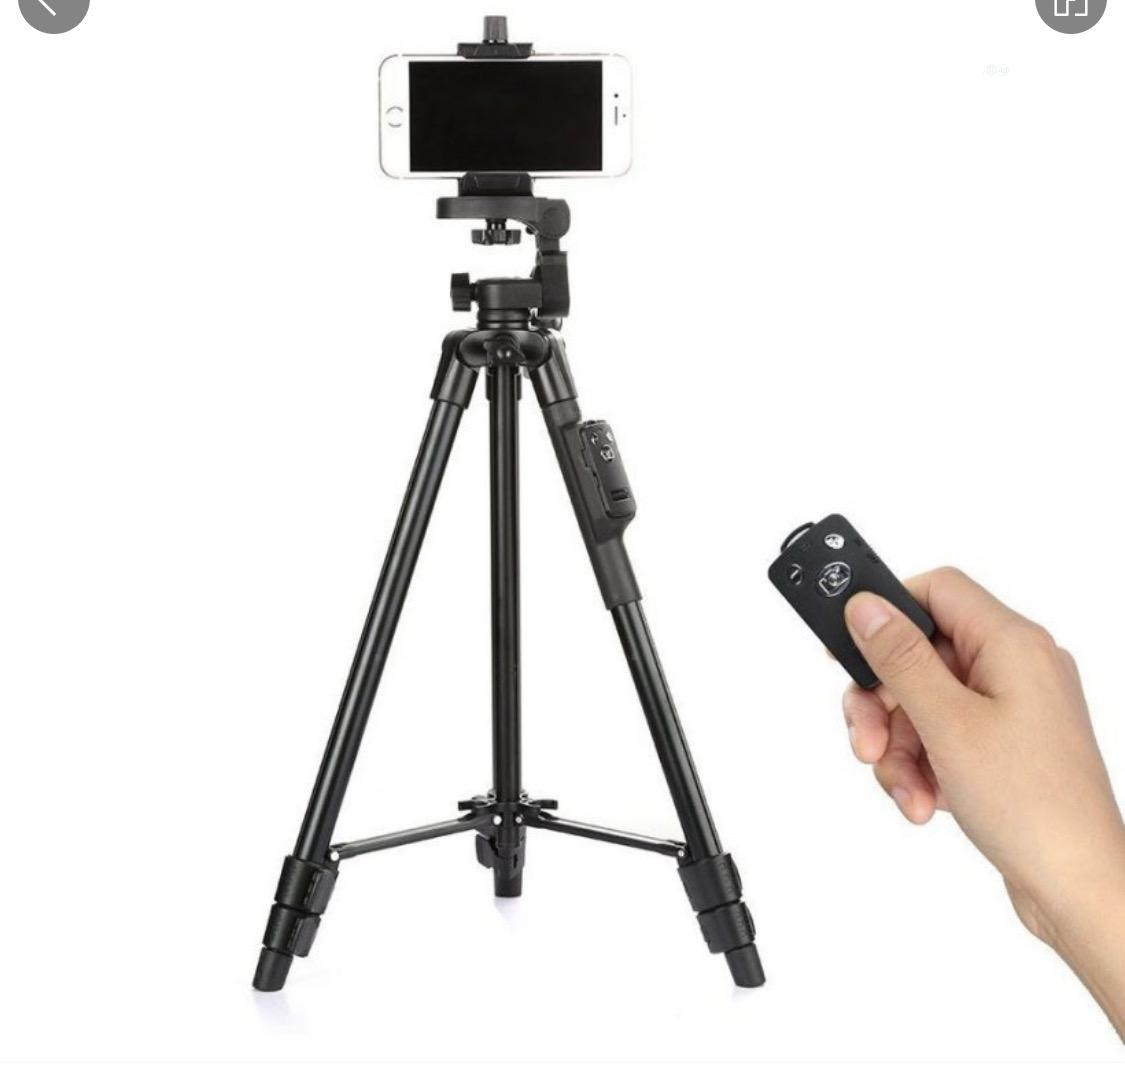 YUNGTENG VCT-5208RM Smartphones Tripod Stand +Remote Control